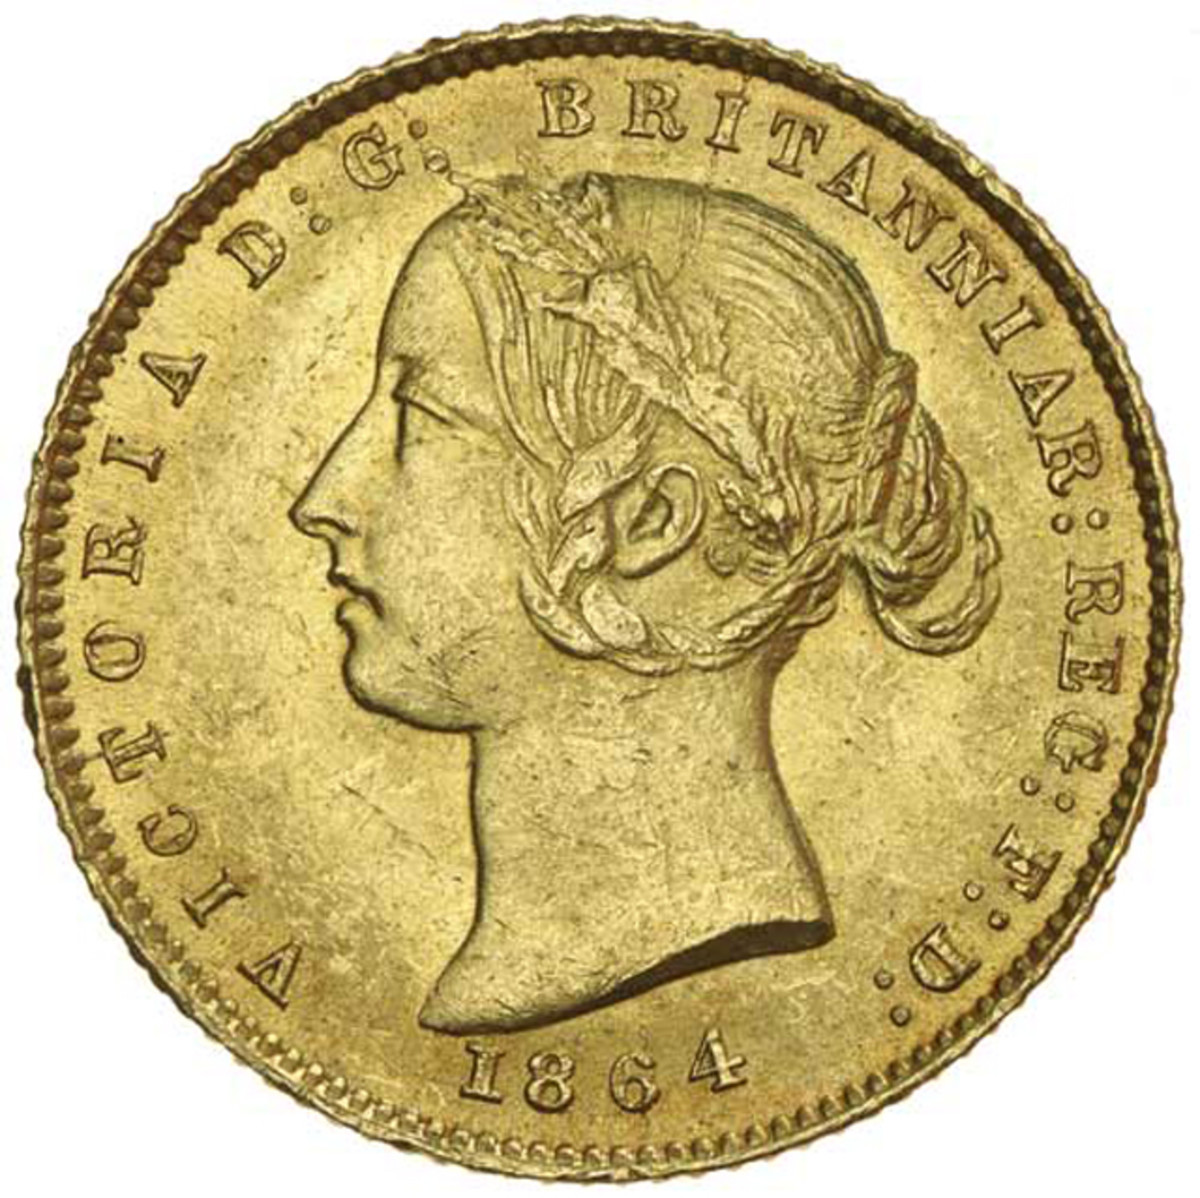 Obverse of second type of Queen Victoria half sovereign of 1864 with Roman I in date that took $18,06 in UNC. Image courtesy Noble Numismatics, Sydney.